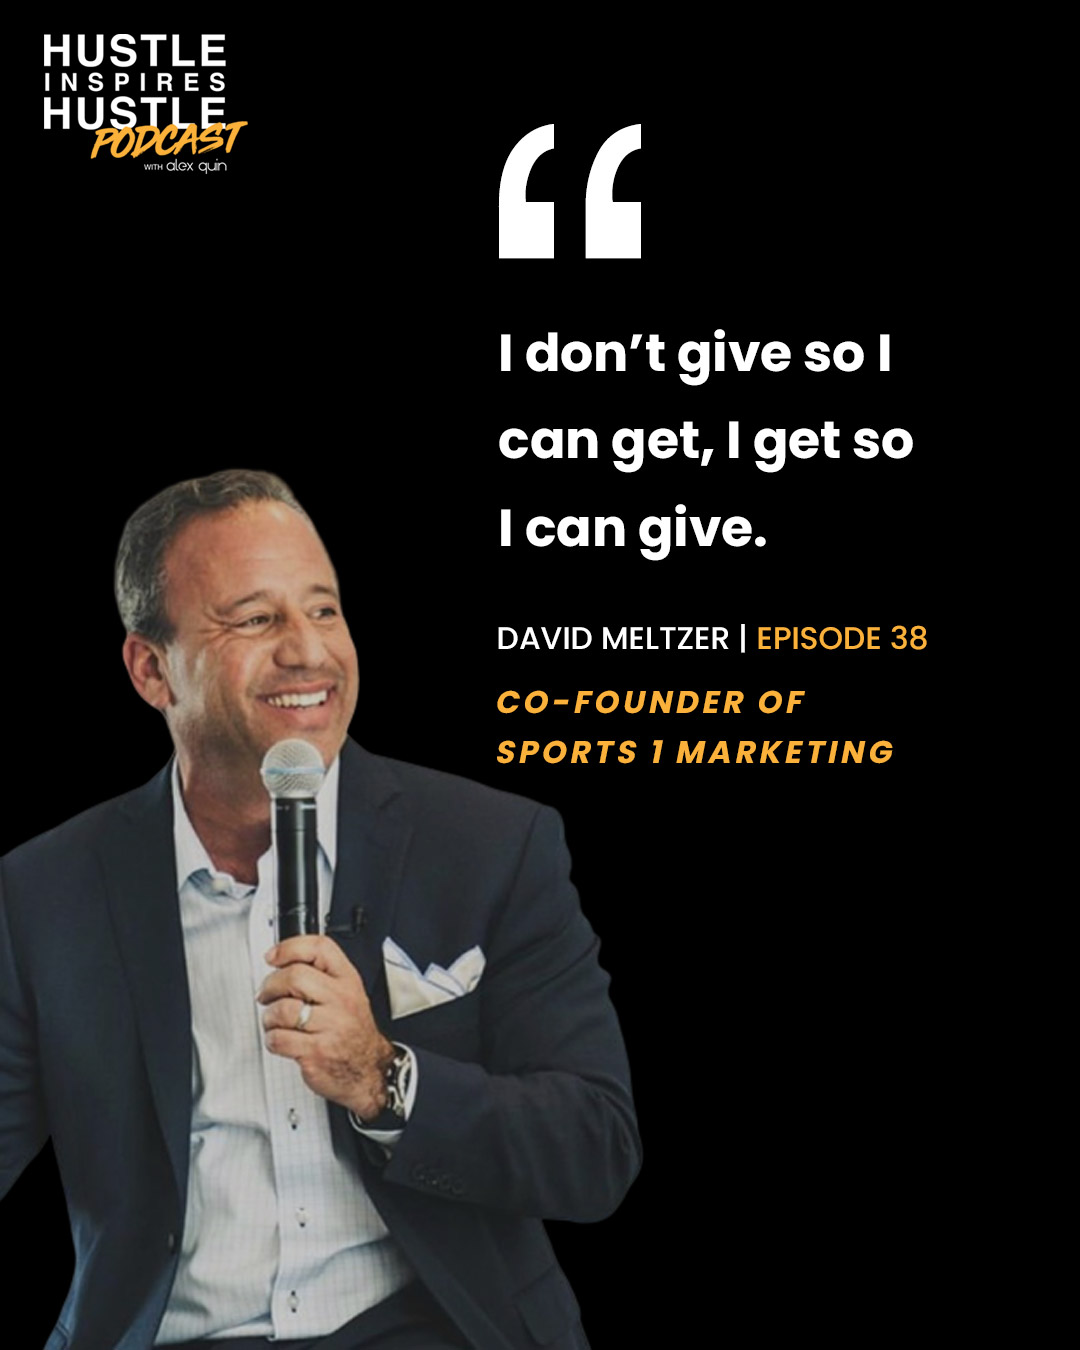 David Meltzer & Alex Quin Hustle Inspires Hustle Podcast